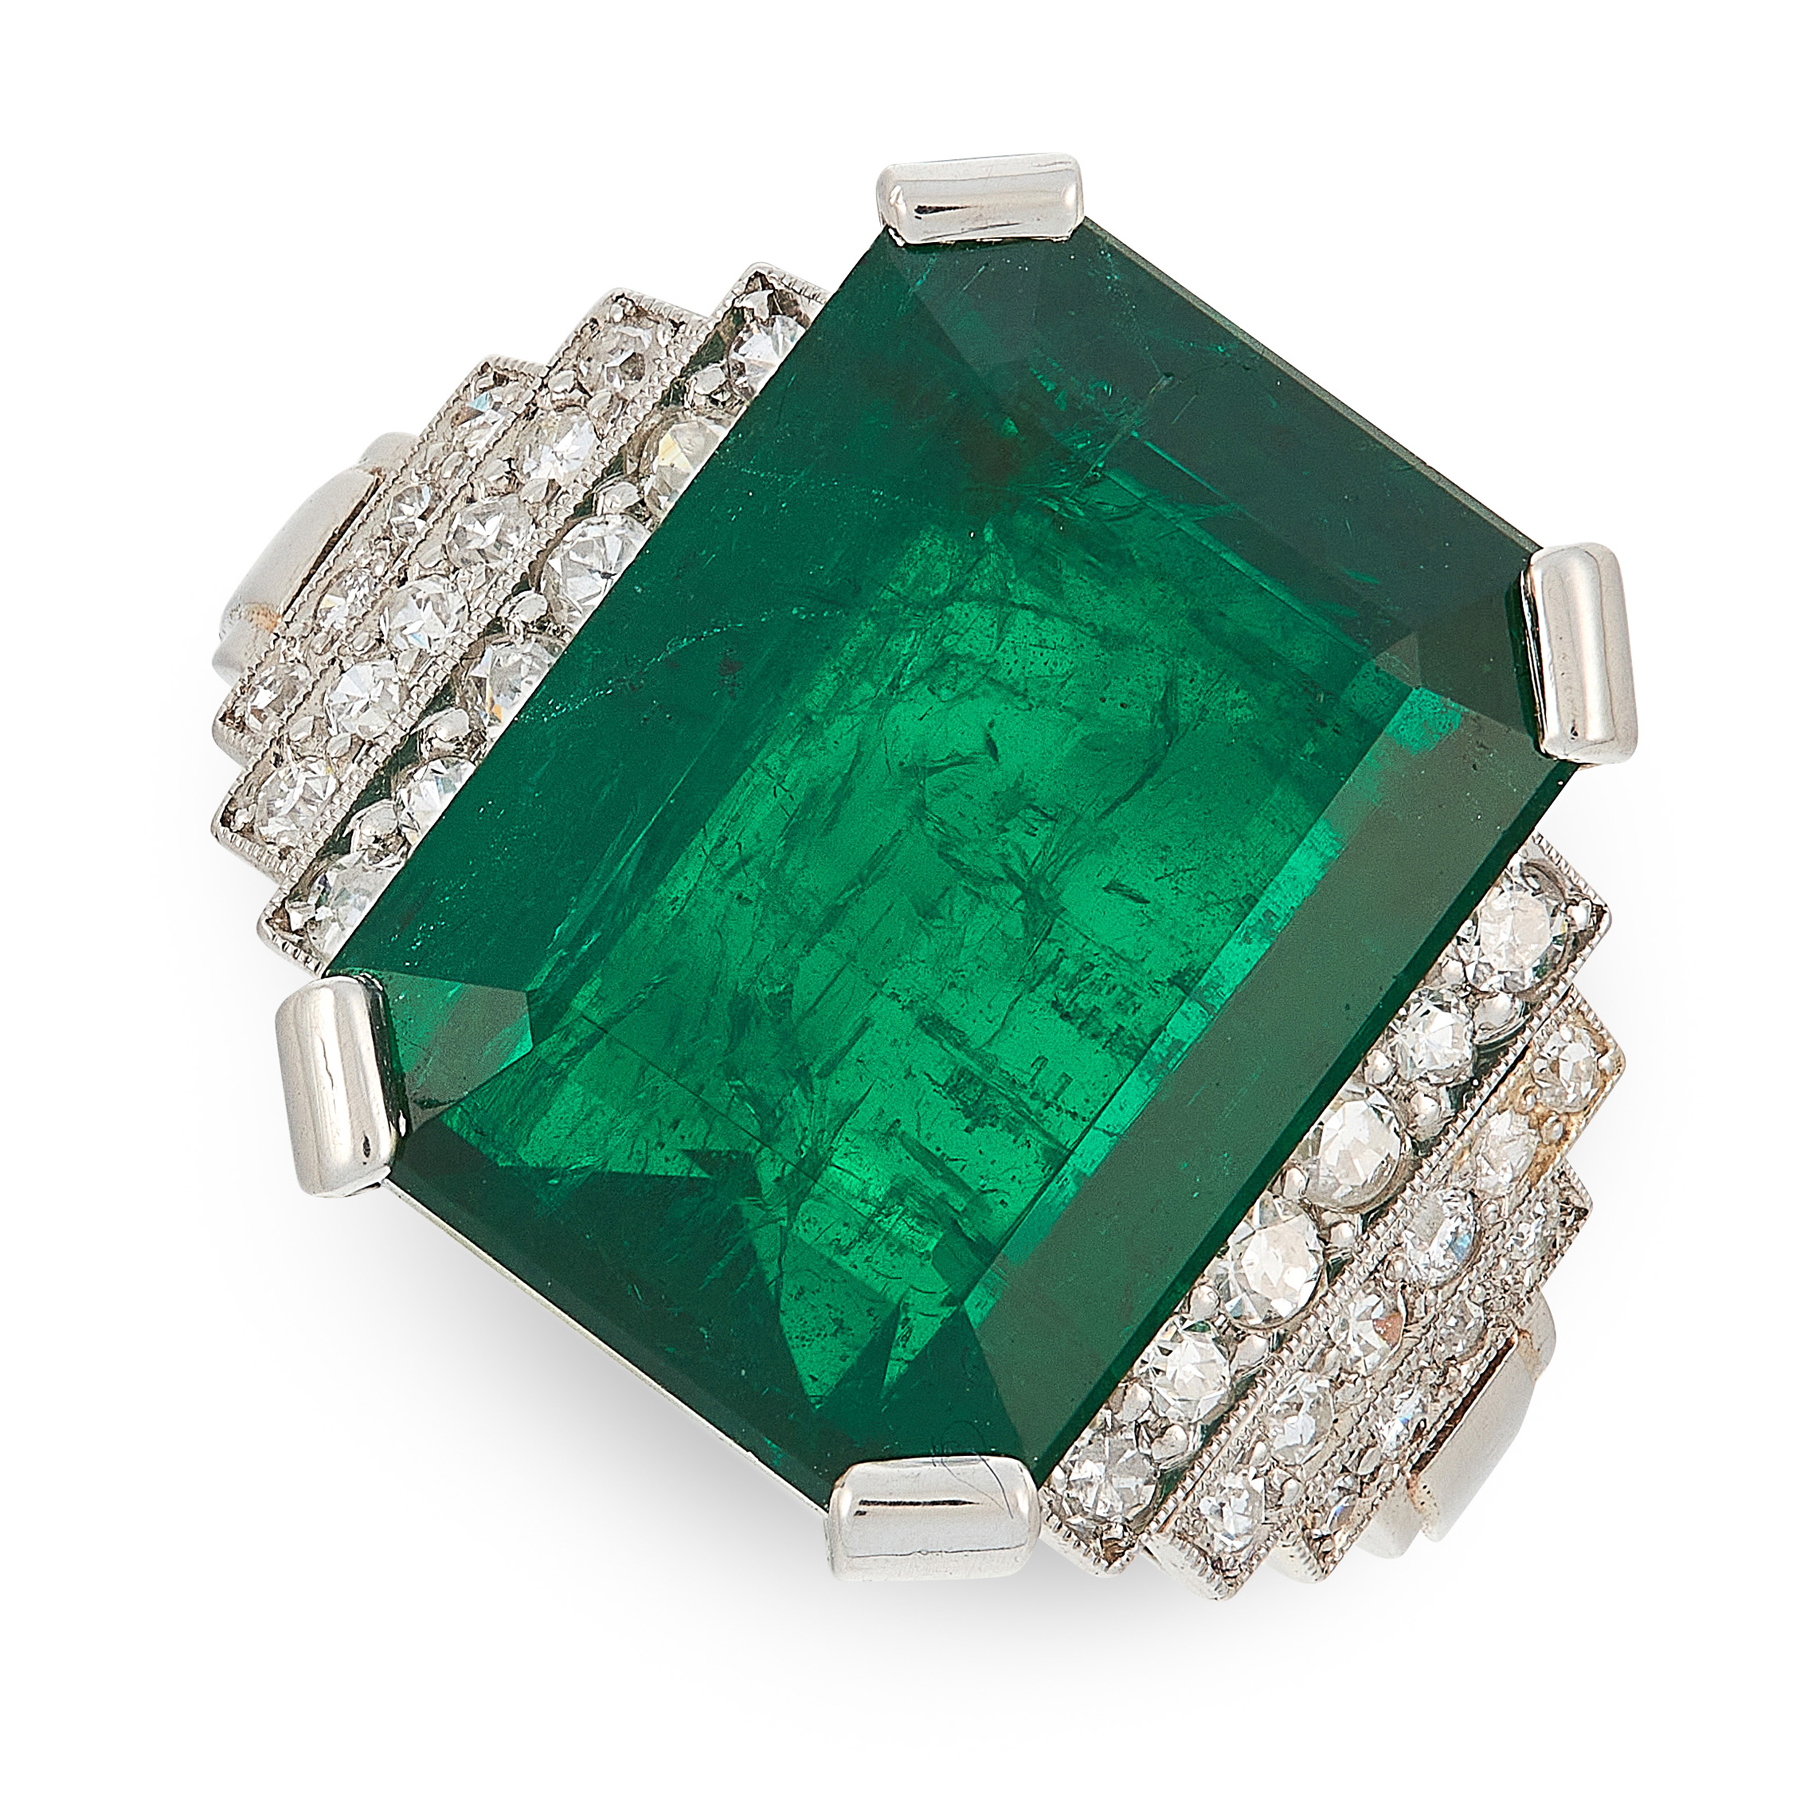 AN ART DECO EMERALD AND DIAMOND RING in platinum, set with an emerald cut emerald of 10.26 carats,